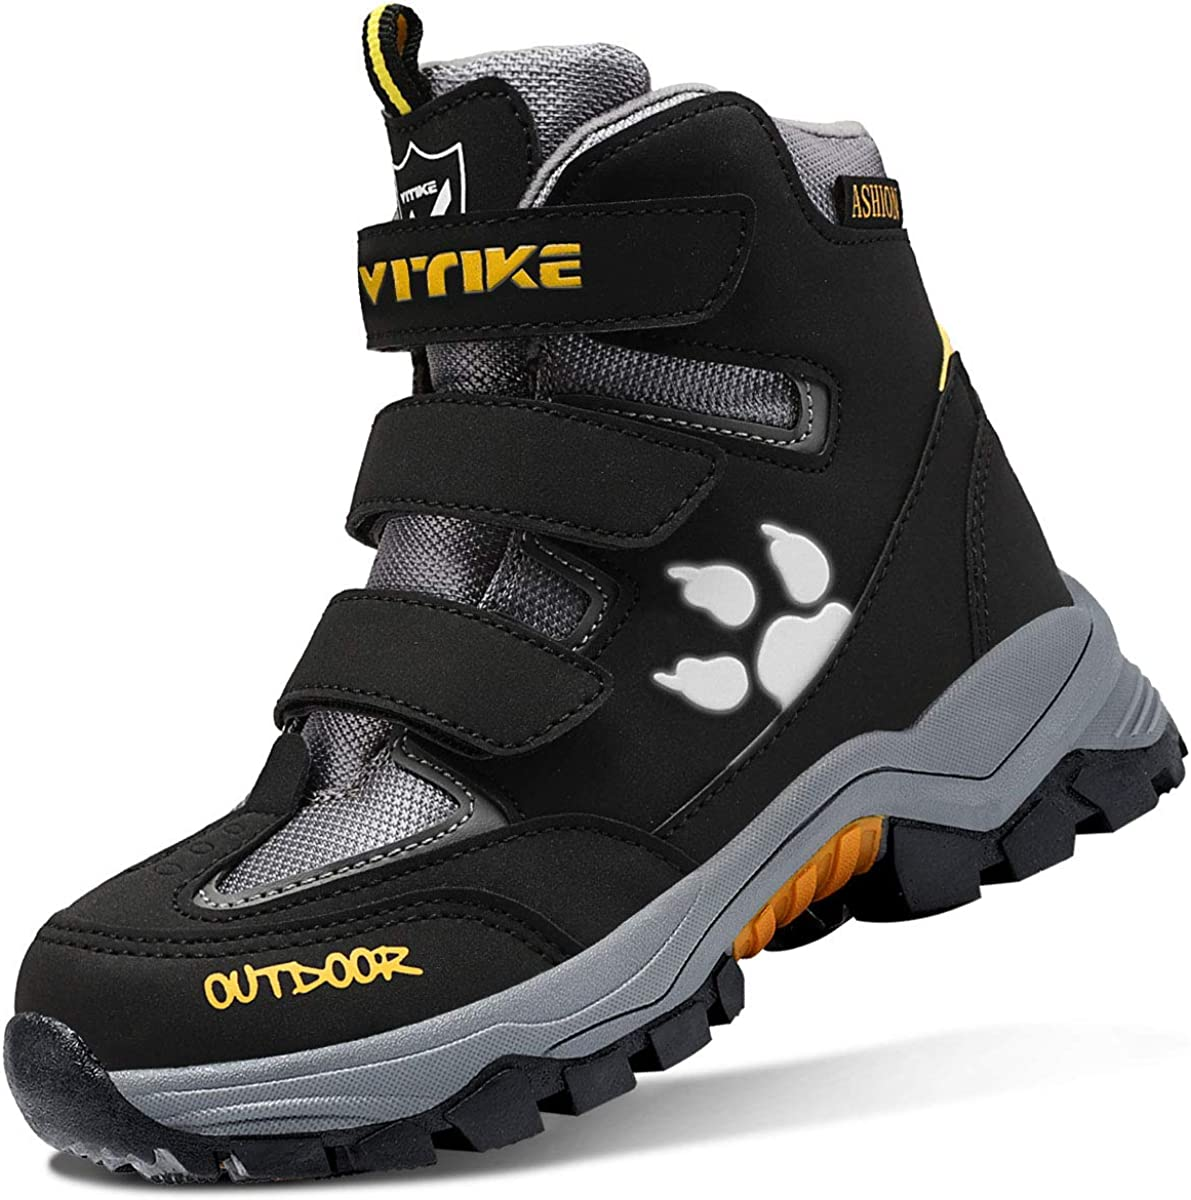 Boys Snow Boots Fort Worth Mall Waterproof Antiskid safety Outdoor Hiking Warm Sl